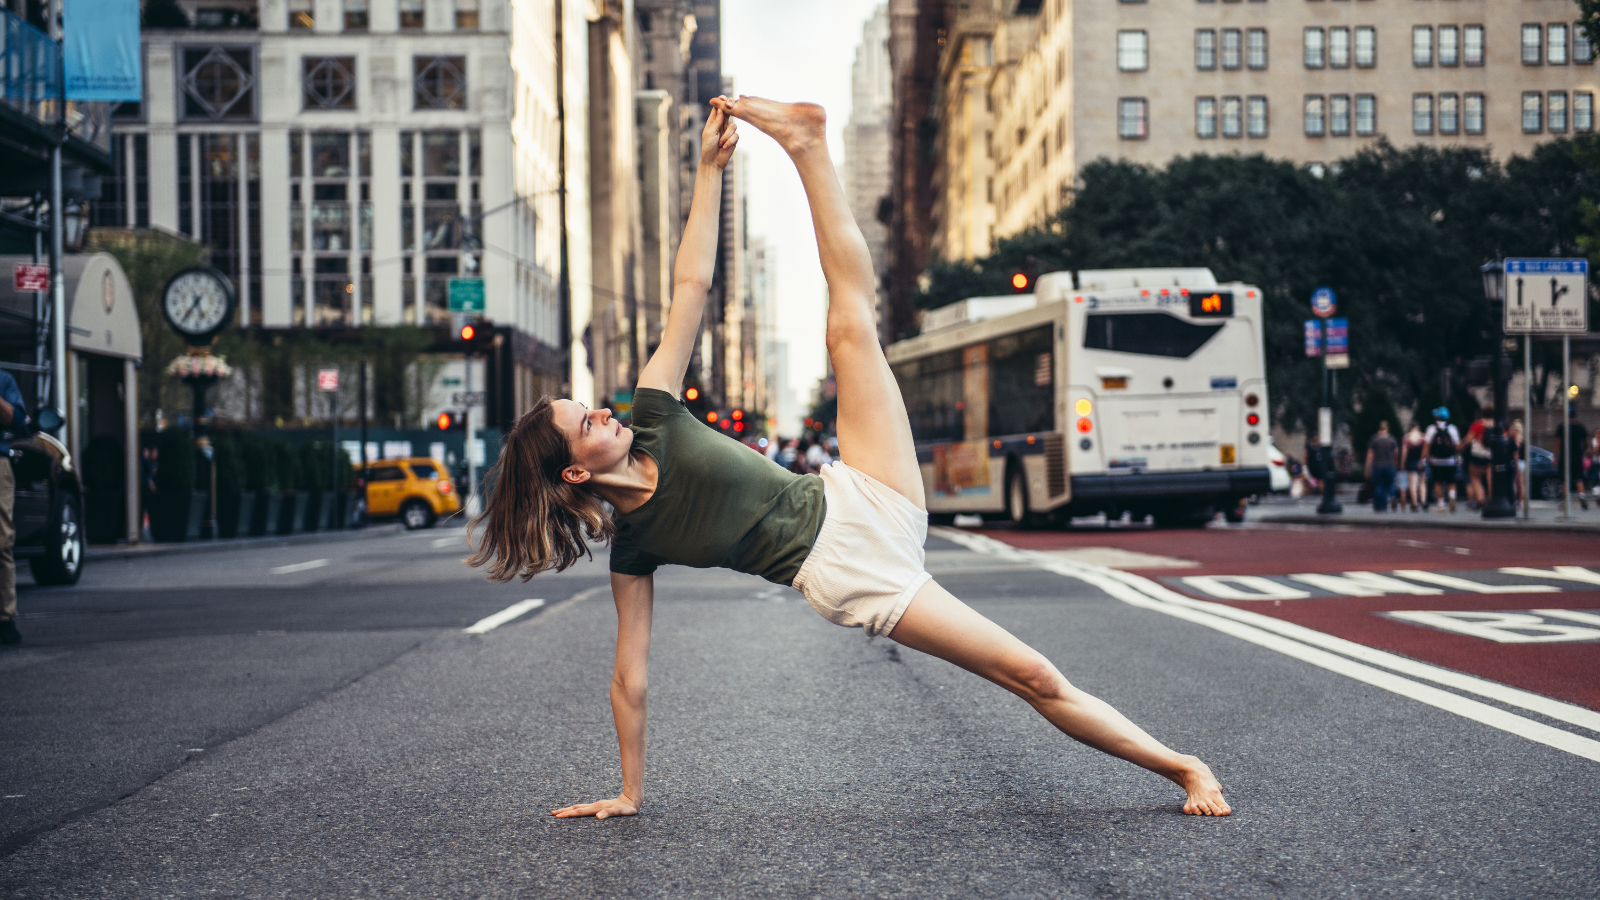 Yoga wellness tips to honor and respect our human frailty as well as our strength in Side Plank Pose (Vasisthasana)